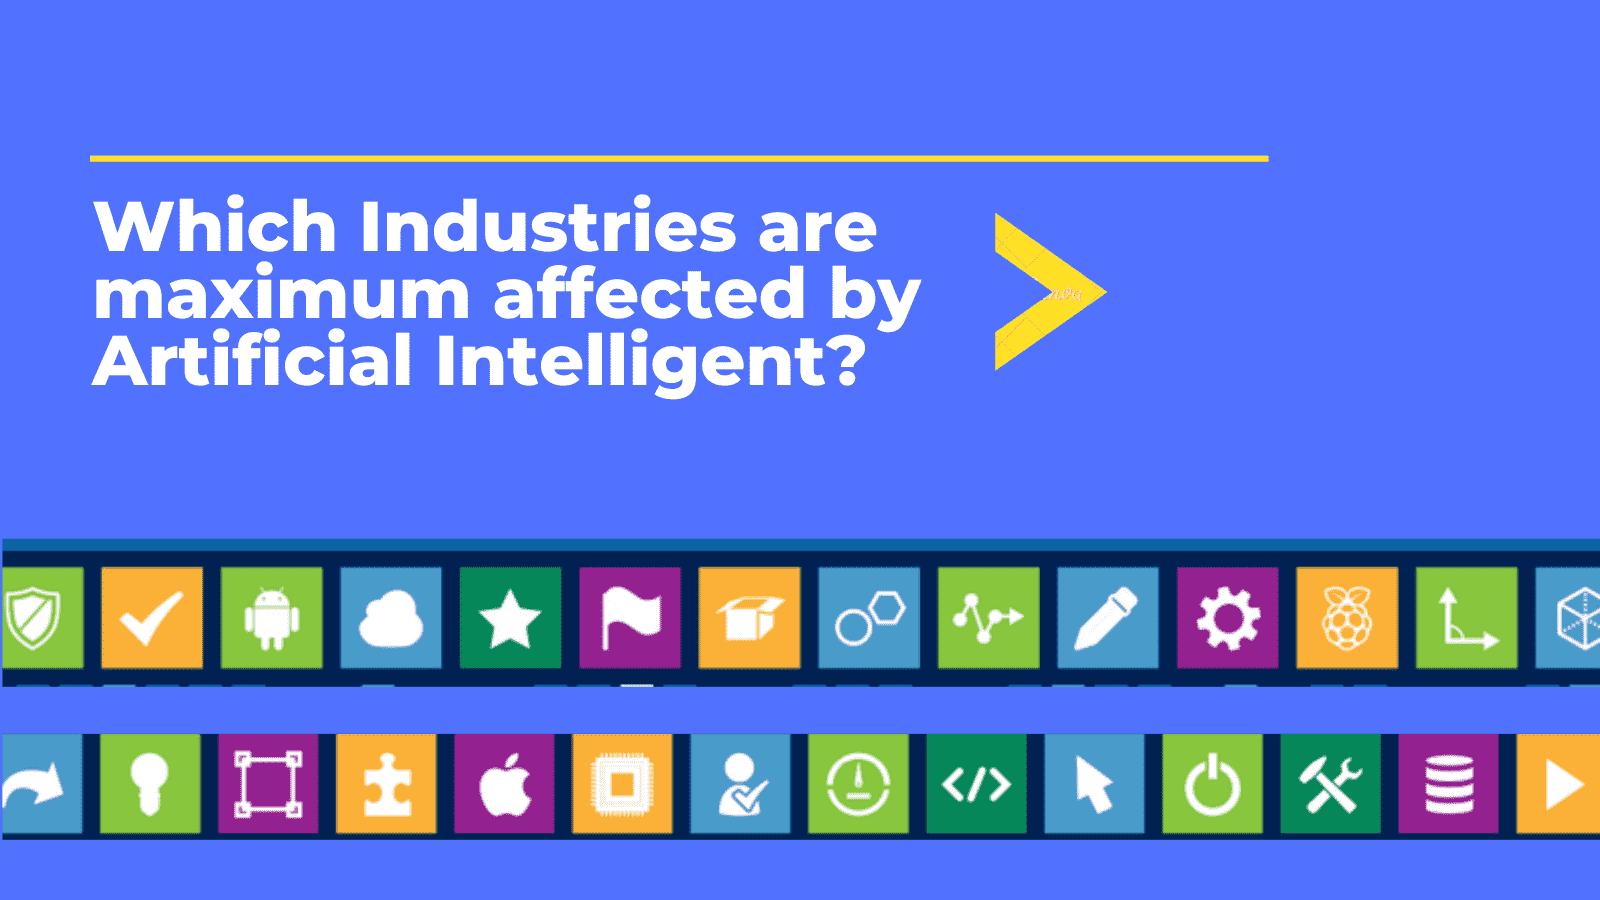 Which Industries are maximum affected by Artificial Intelligence?